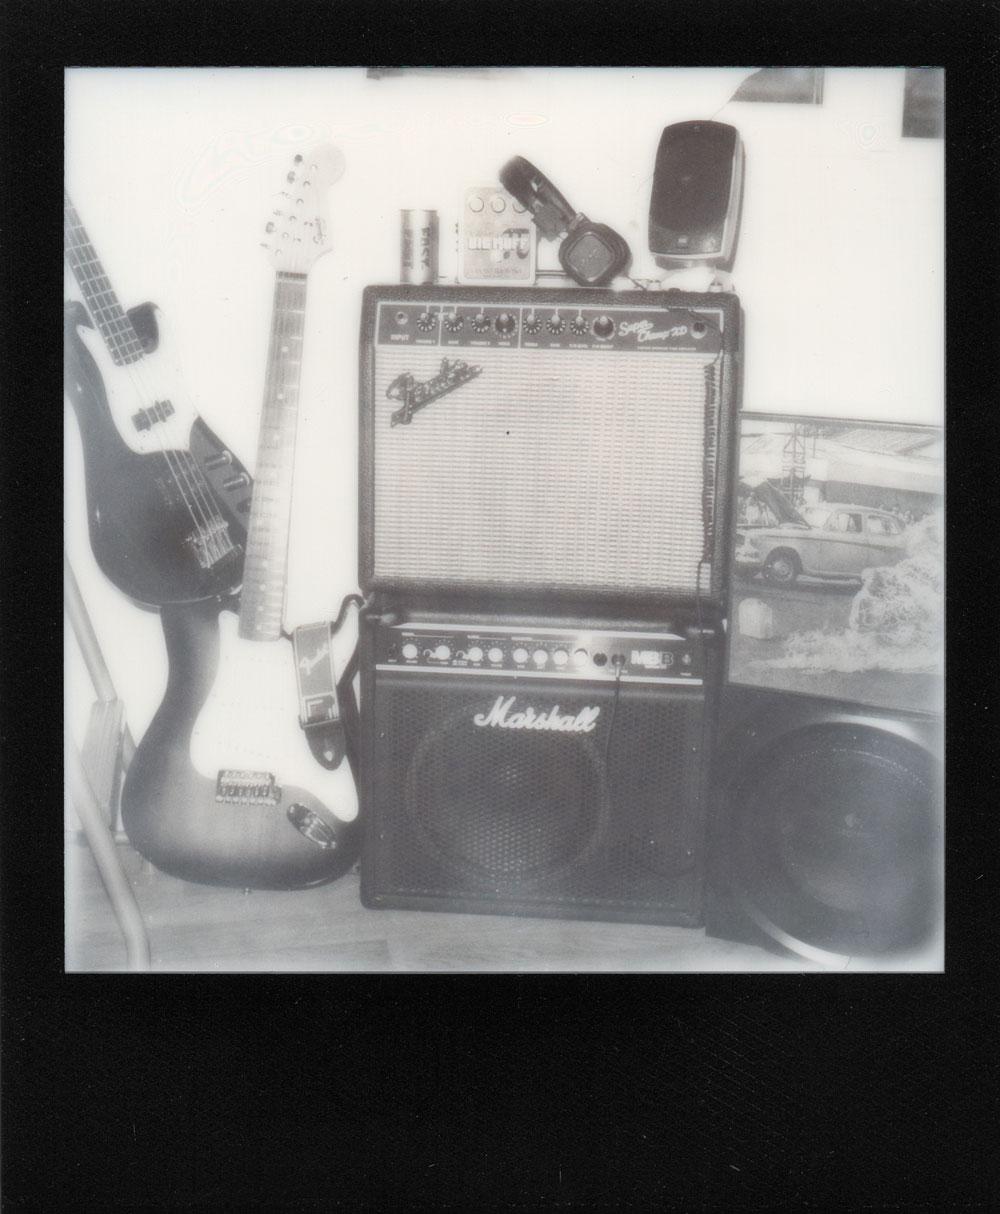 005.-Musical-gear-NO-EDIT---Polaroid-SLR680